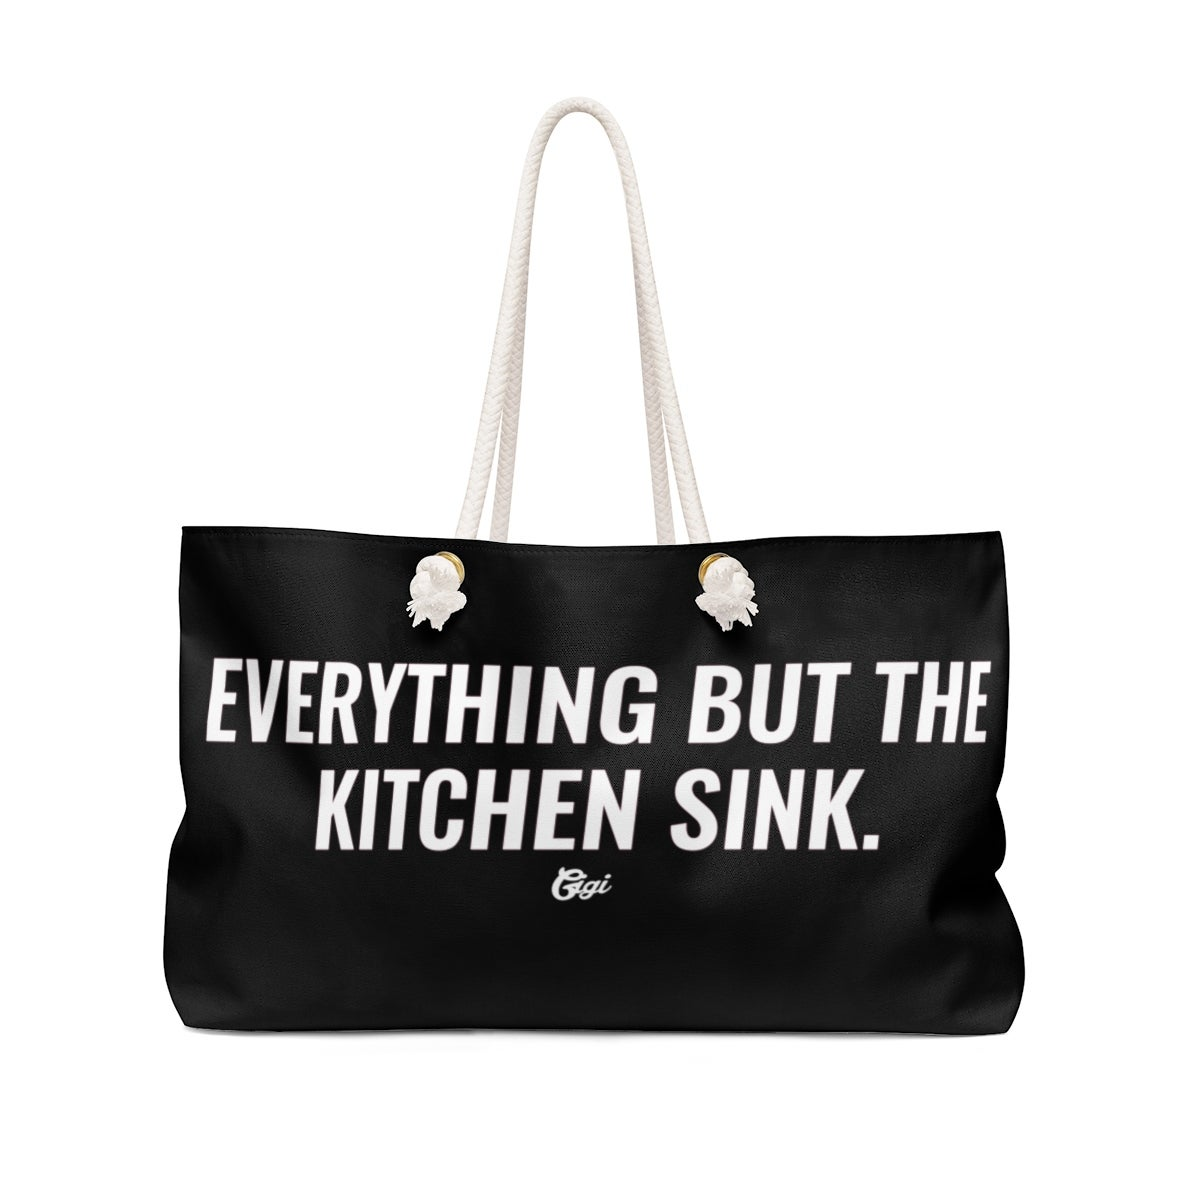 Image of EVERYTHING BUT THE KITCHEN SINK TOTE